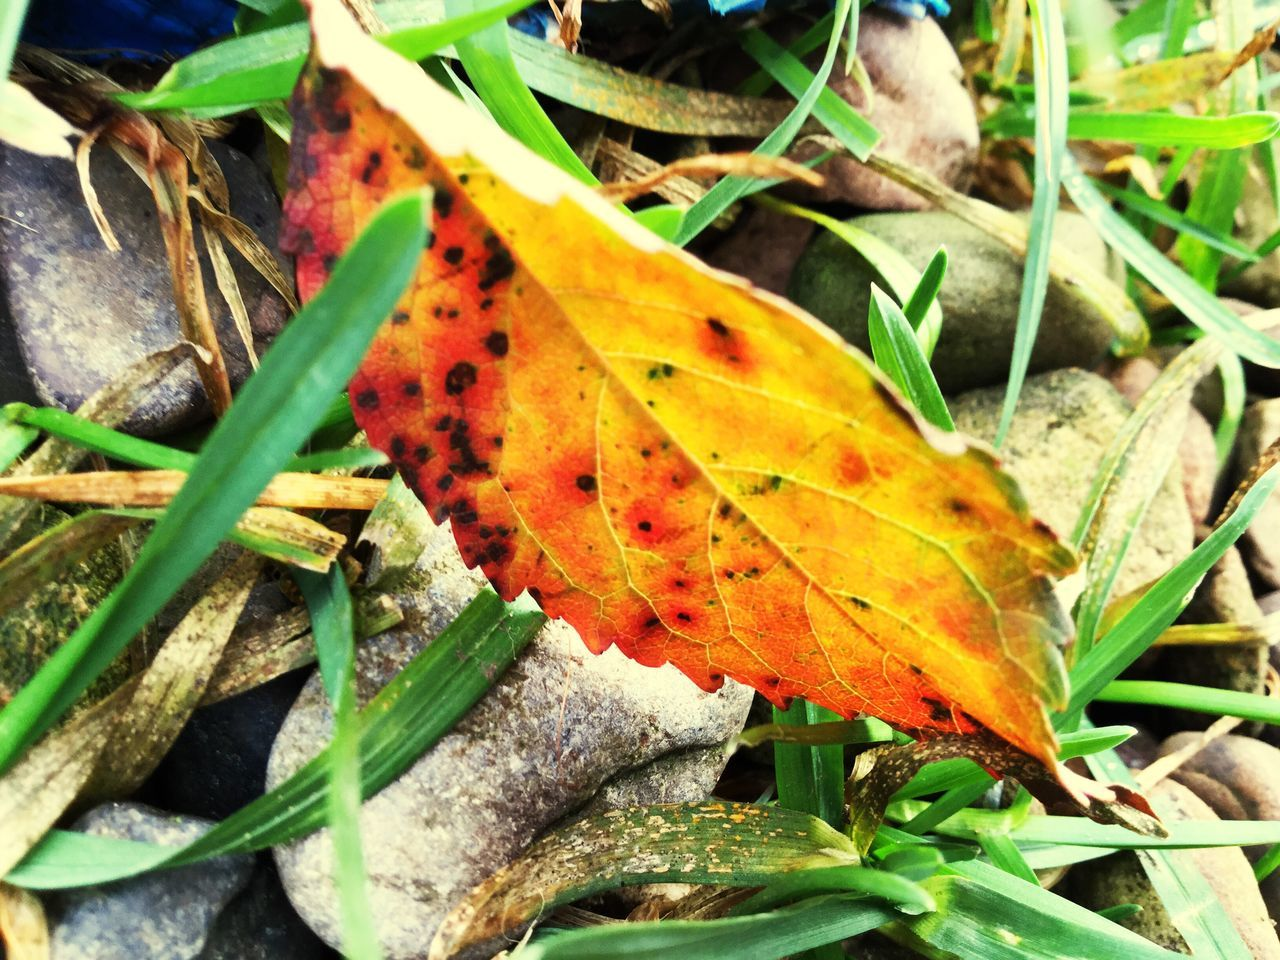 leaf, autumn, change, nature, dry, leaves, day, outdoors, beauty in nature, no people, maple, maple leaf, growth, close-up, plant, fragility, grass